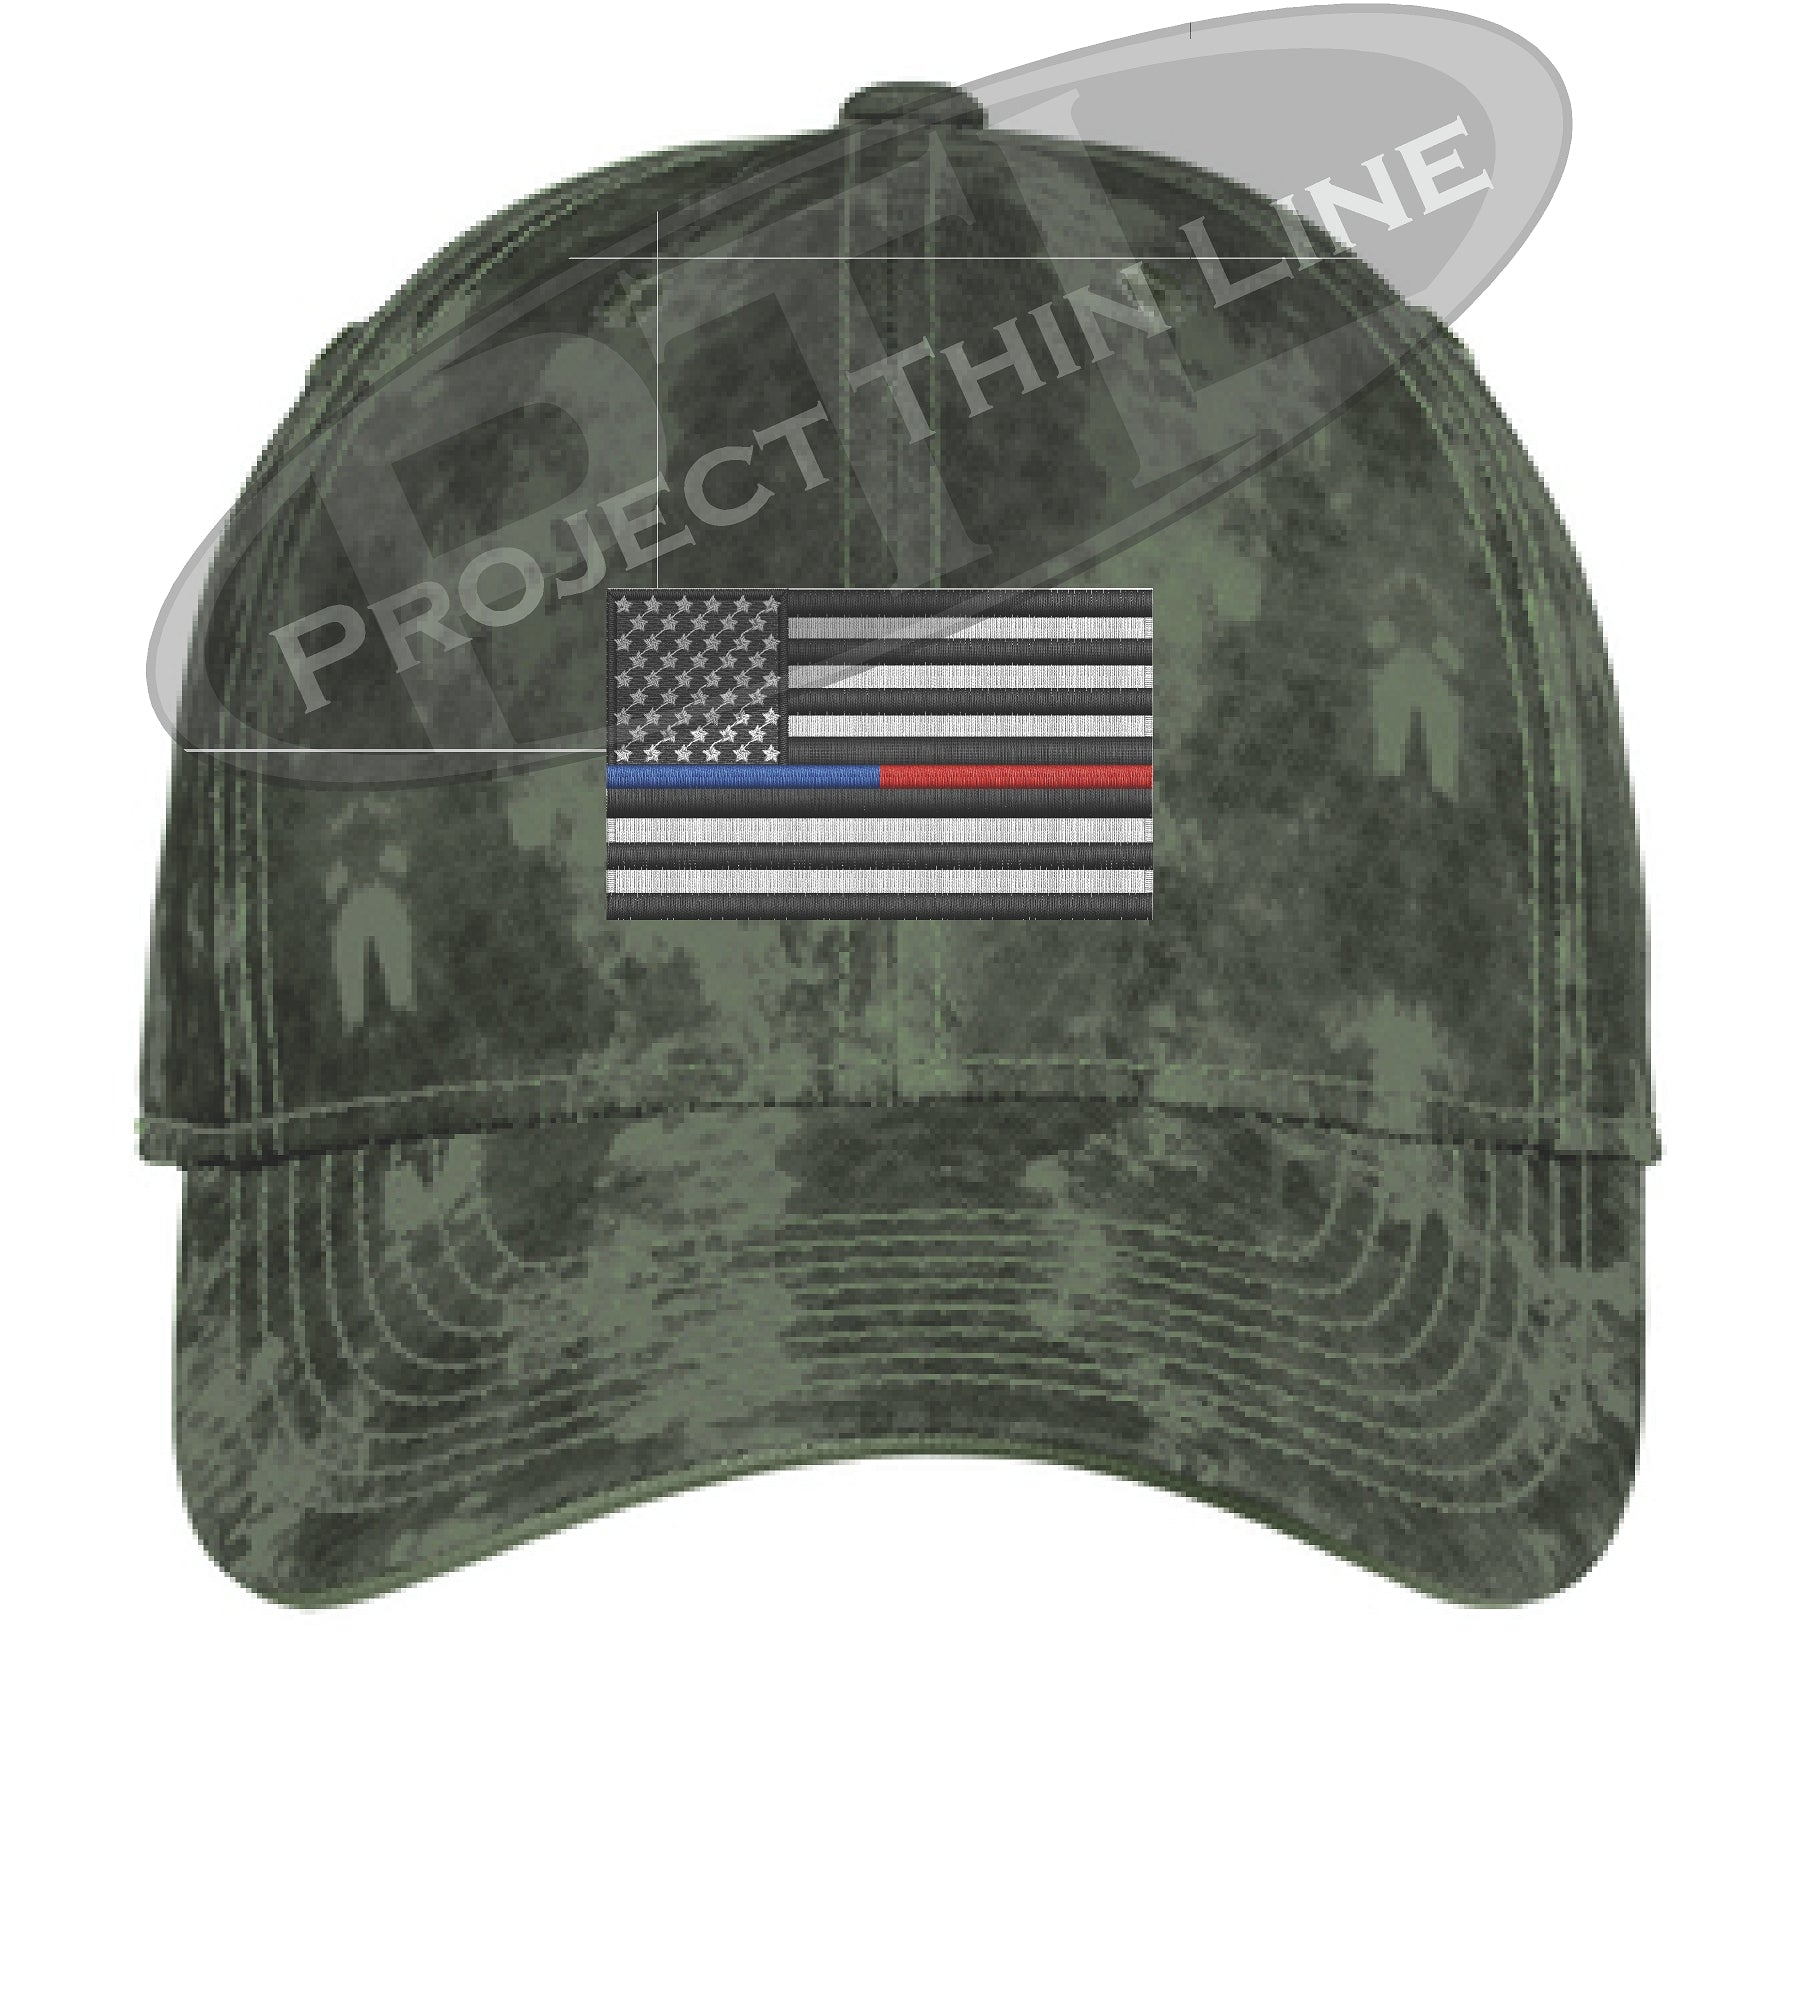 88c2a65ffeeed3 Green Washed Camo Thin Blue / Red Line American Flag Flex Fit Fitted Hat